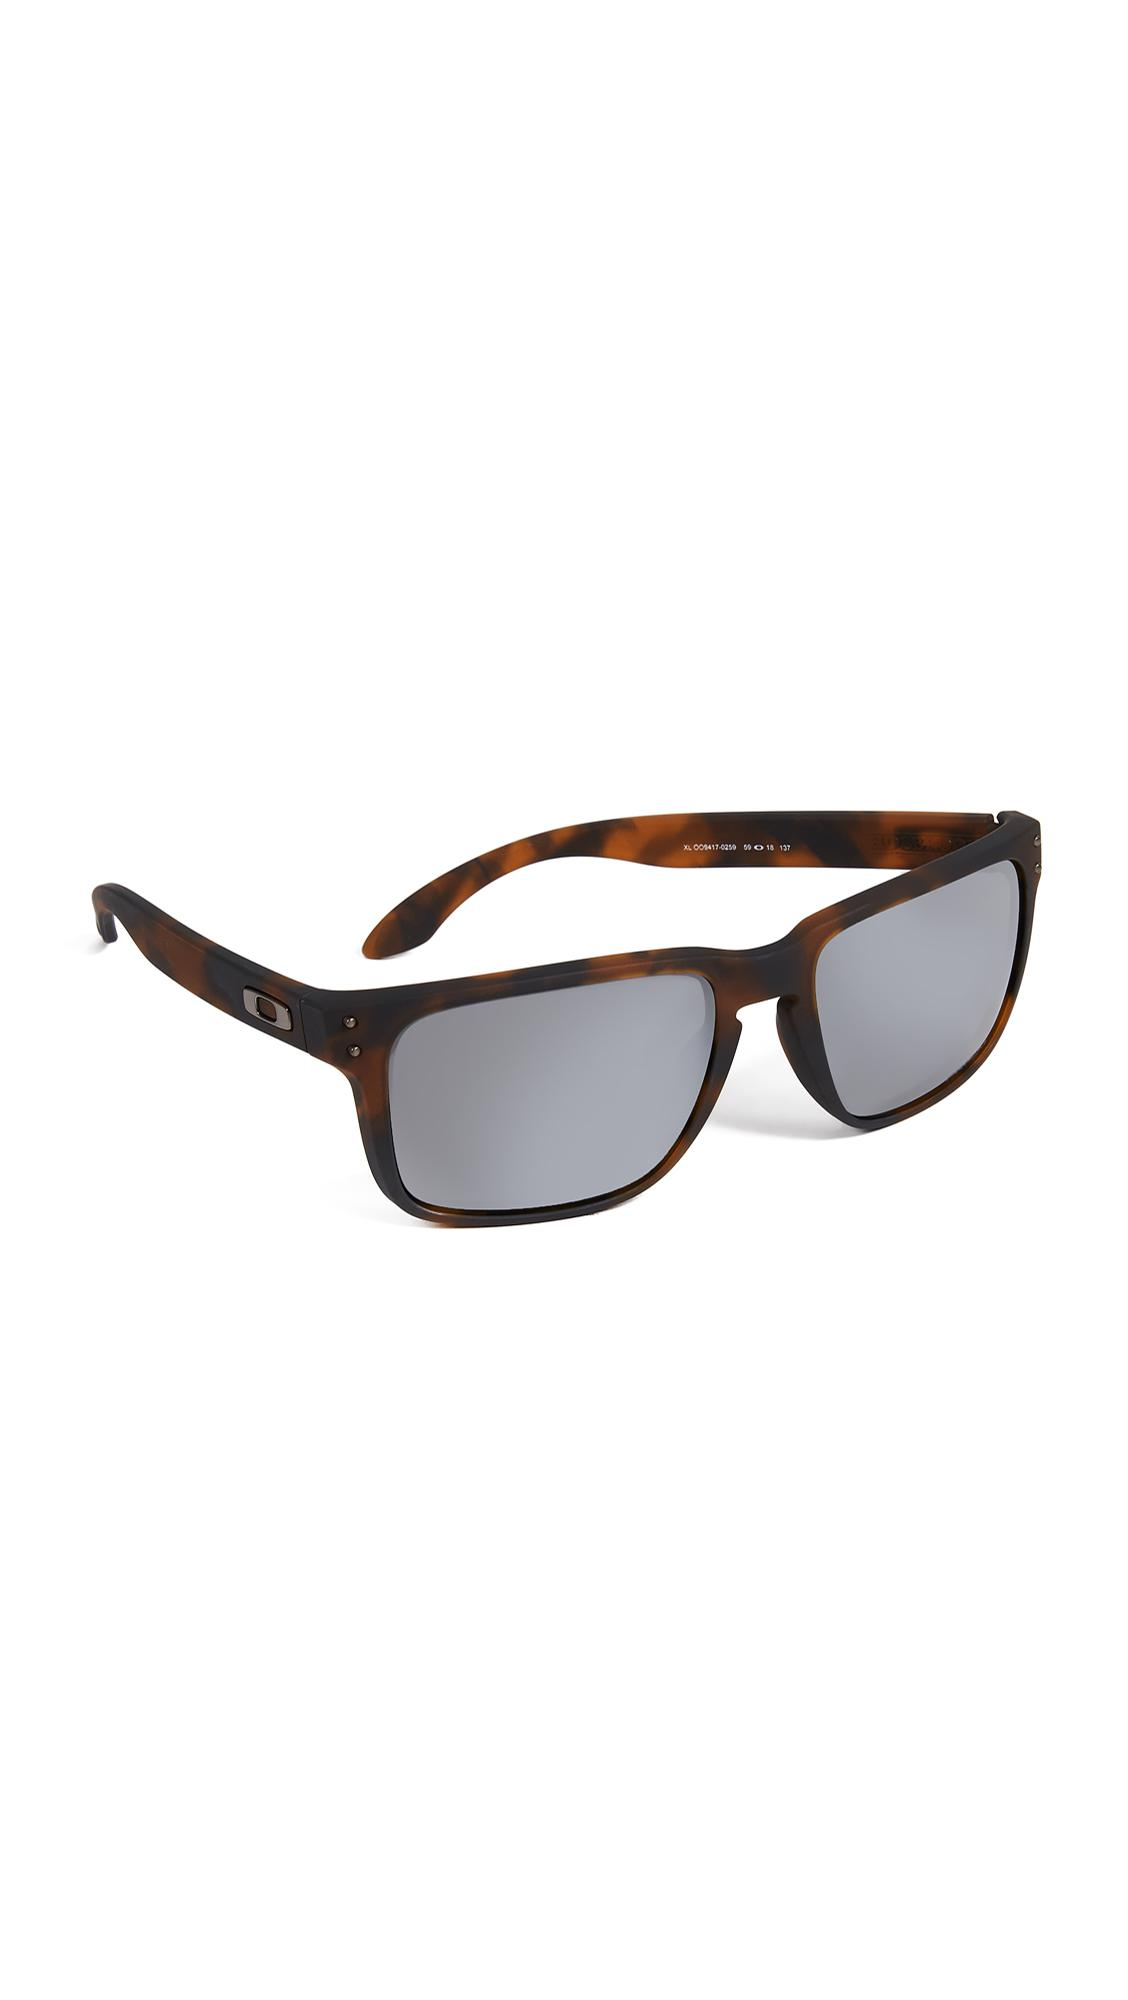 8f193e82f8 Oakley Holbrook Xl Sunglasses in Brown for Men - Lyst